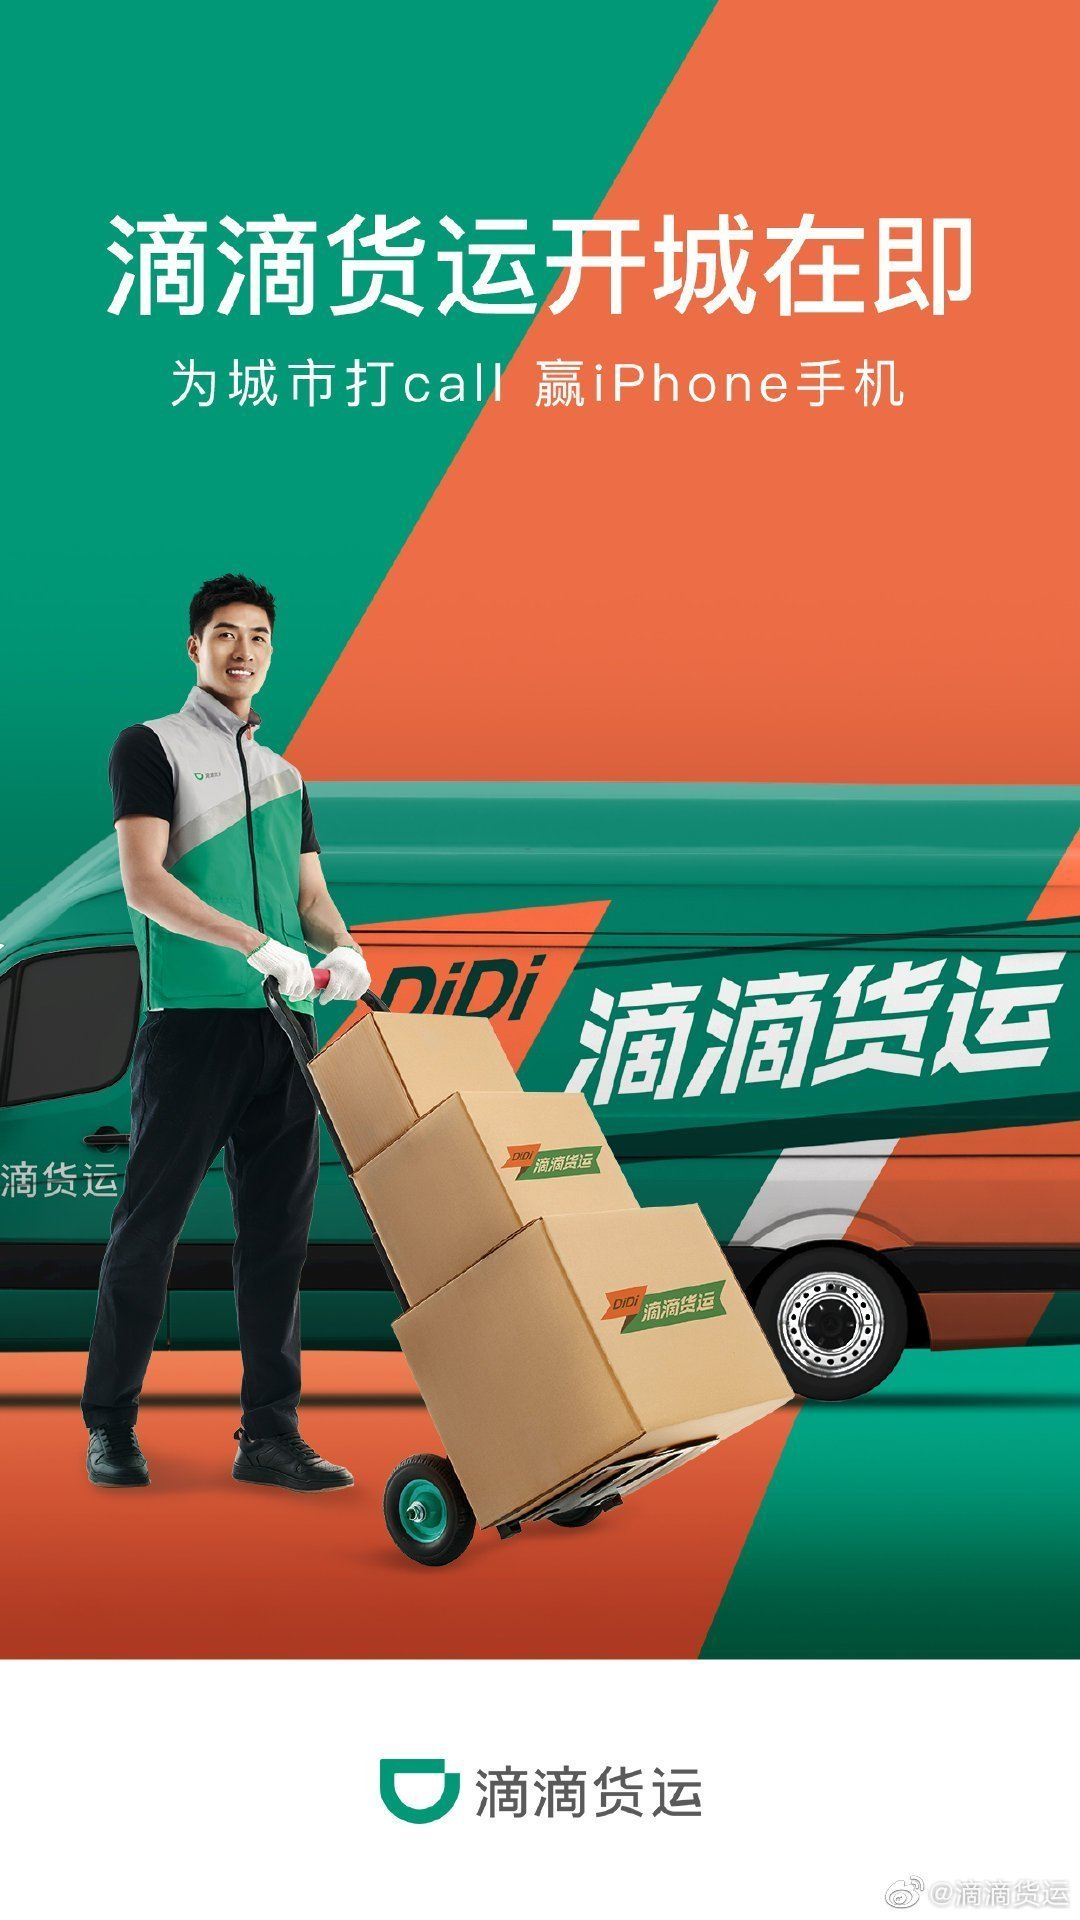 The service will be launched in Chengdu and Hangzhou on June 23